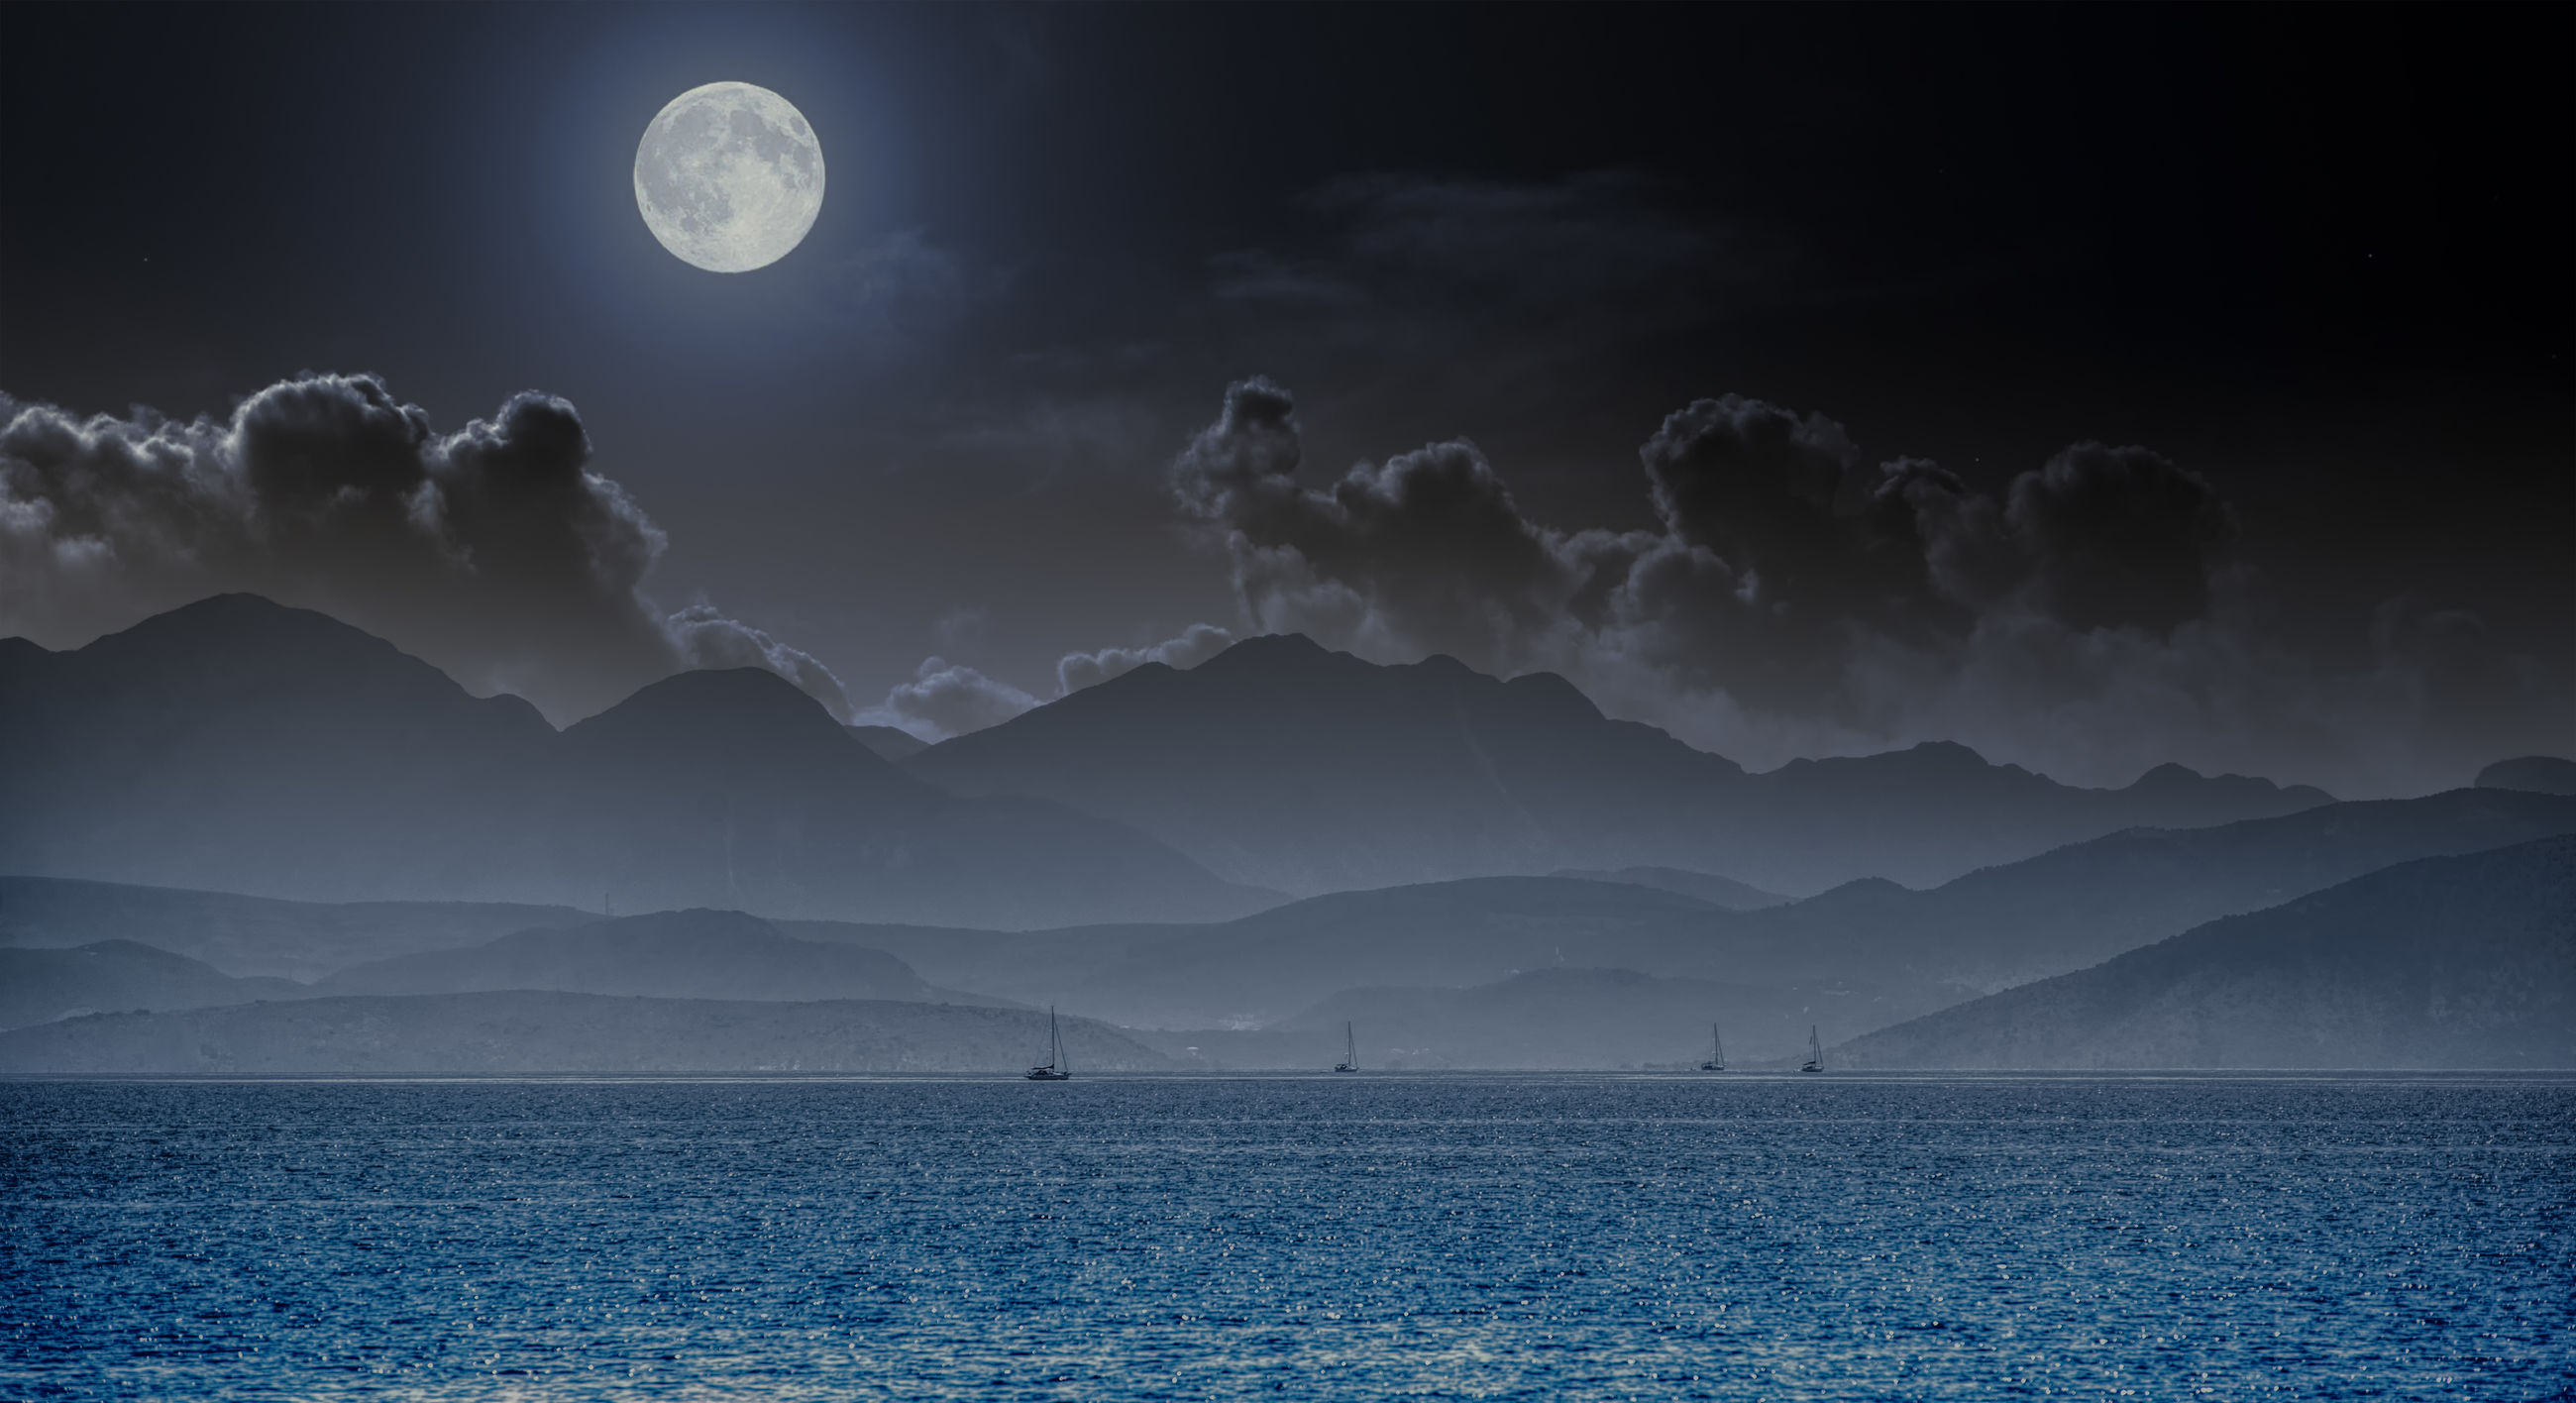 Scenic view of sea and mountains against sky at night